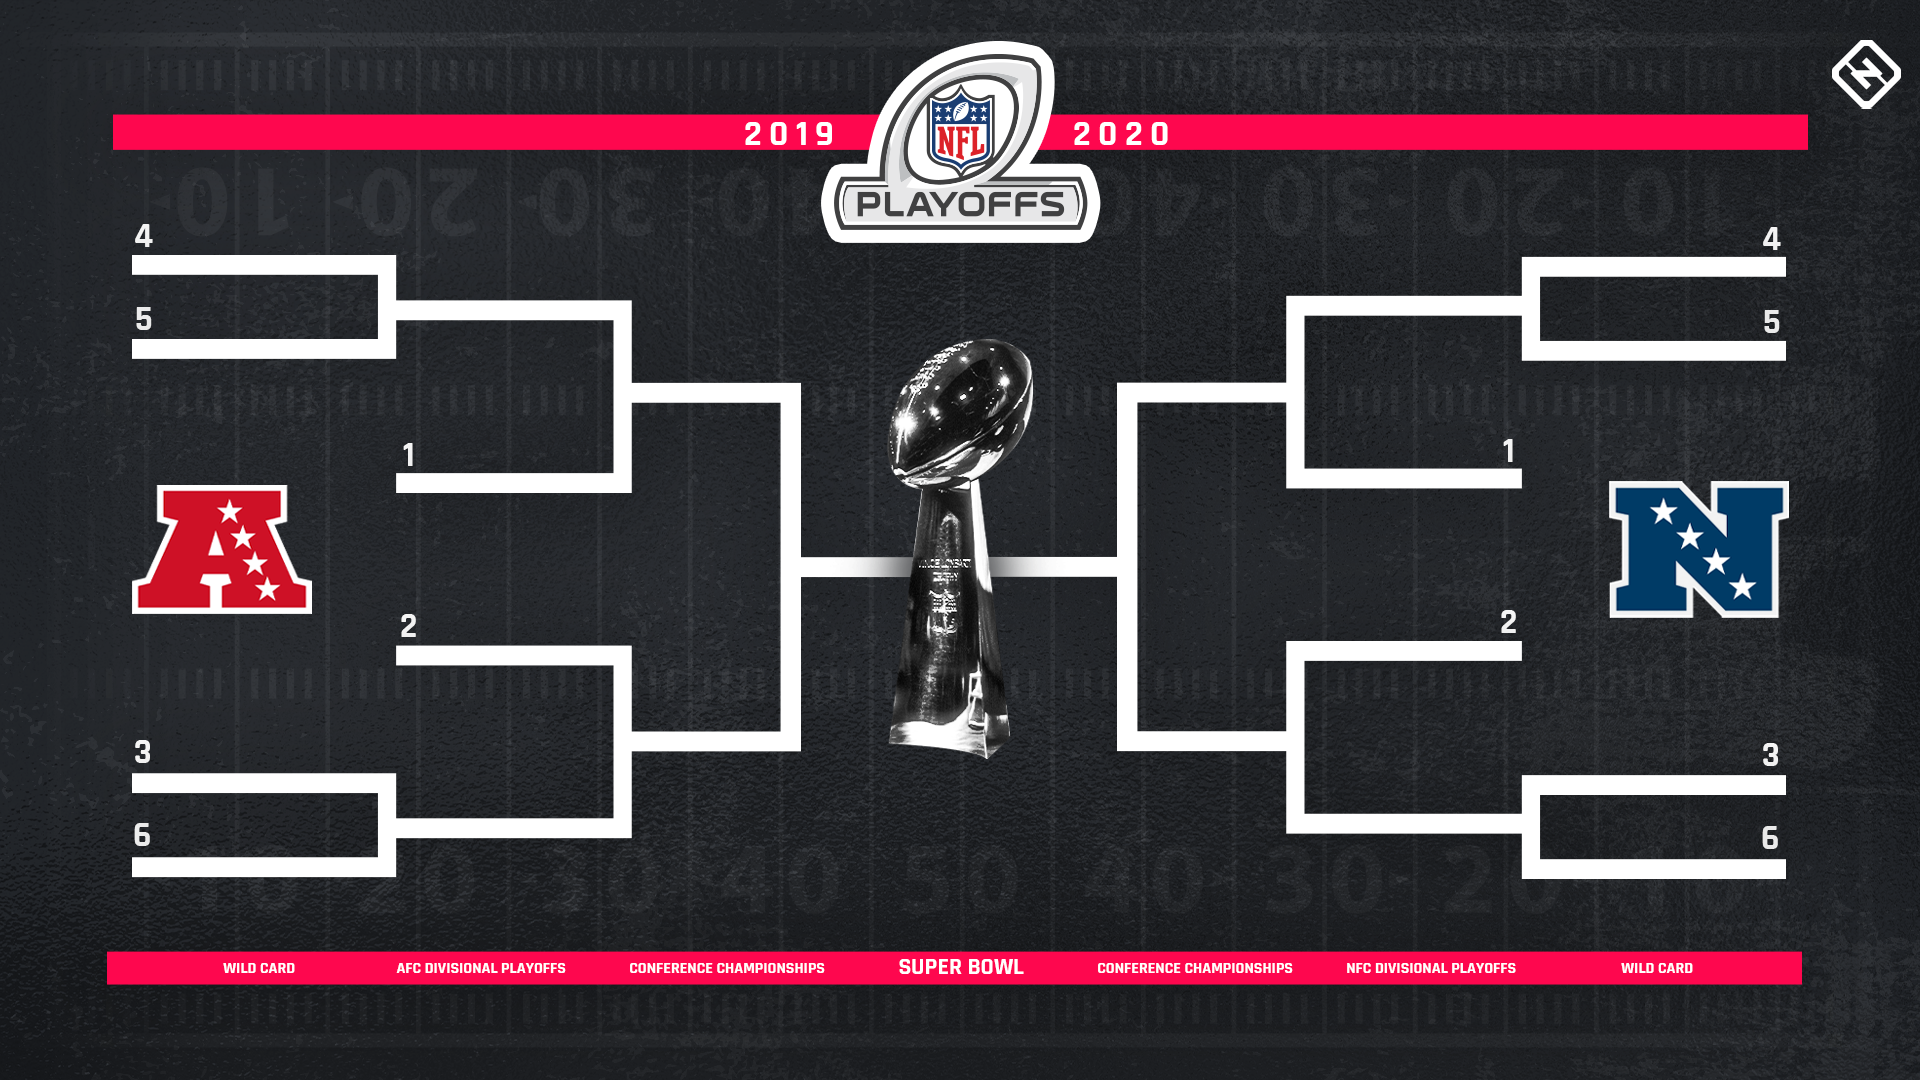 2020 Nfl Playoff Schedule.Nfl Playoff Picture Updated Afc Nfc Standings For Week 13